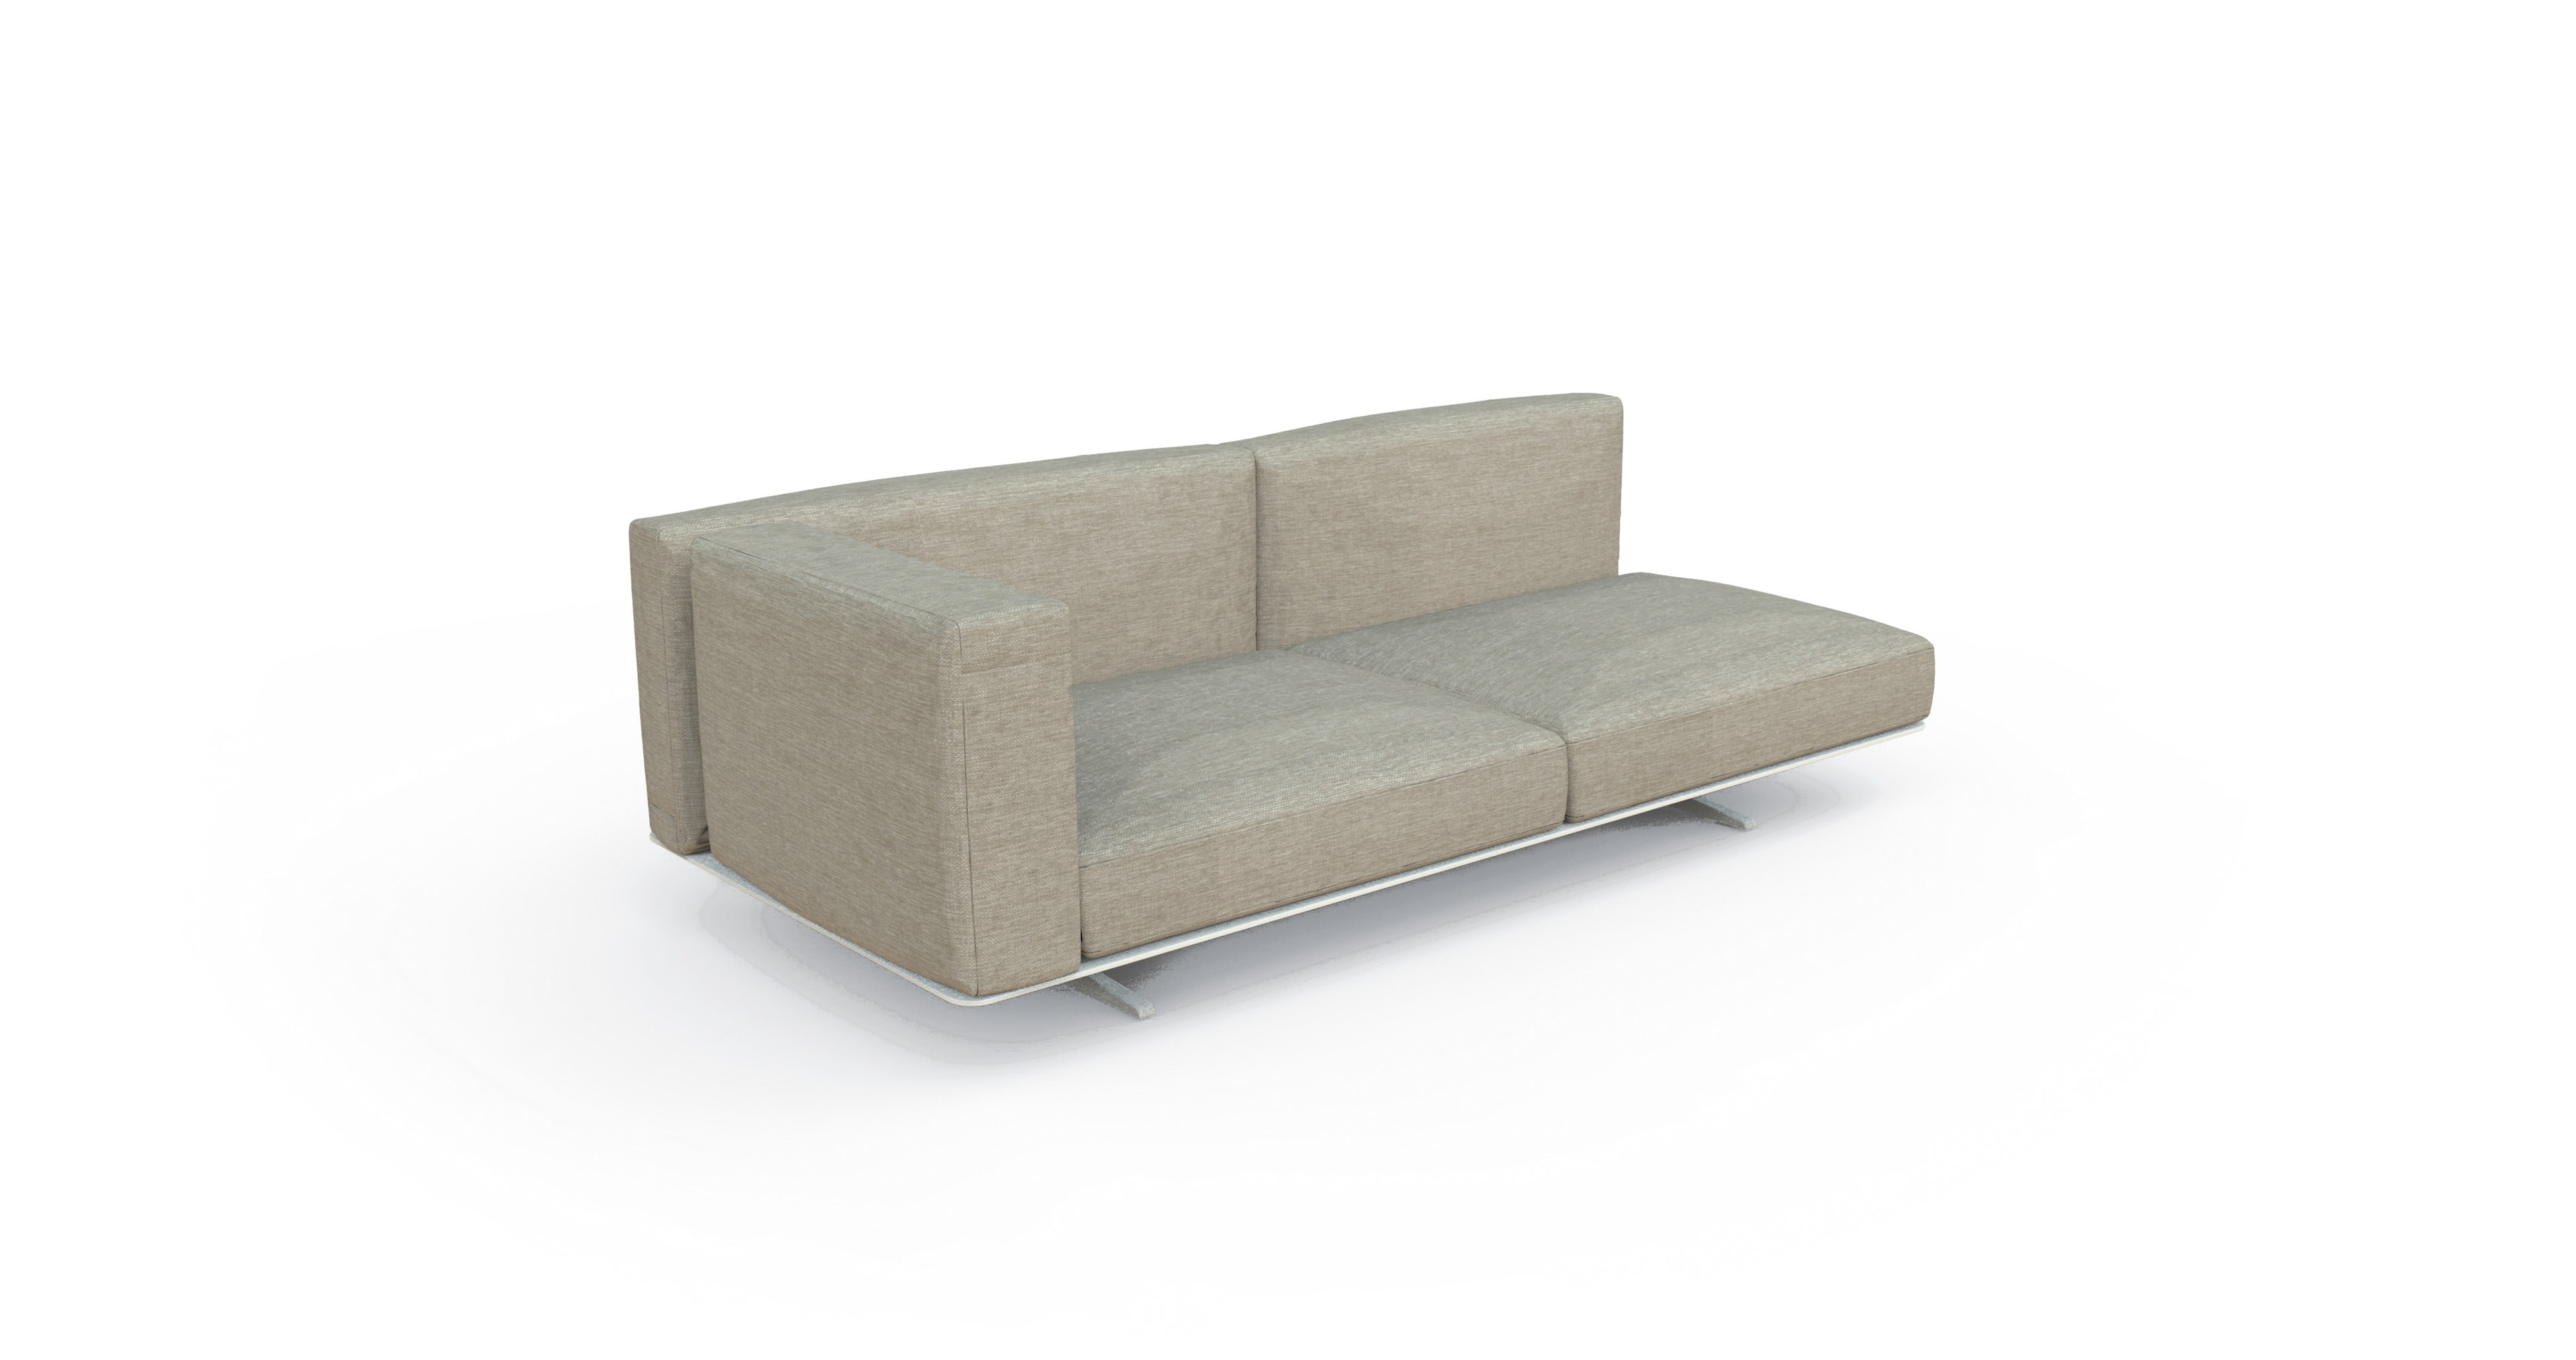 Zambrose 2 seater sofa couture outdoor for 2 seater chaise sofa for sale